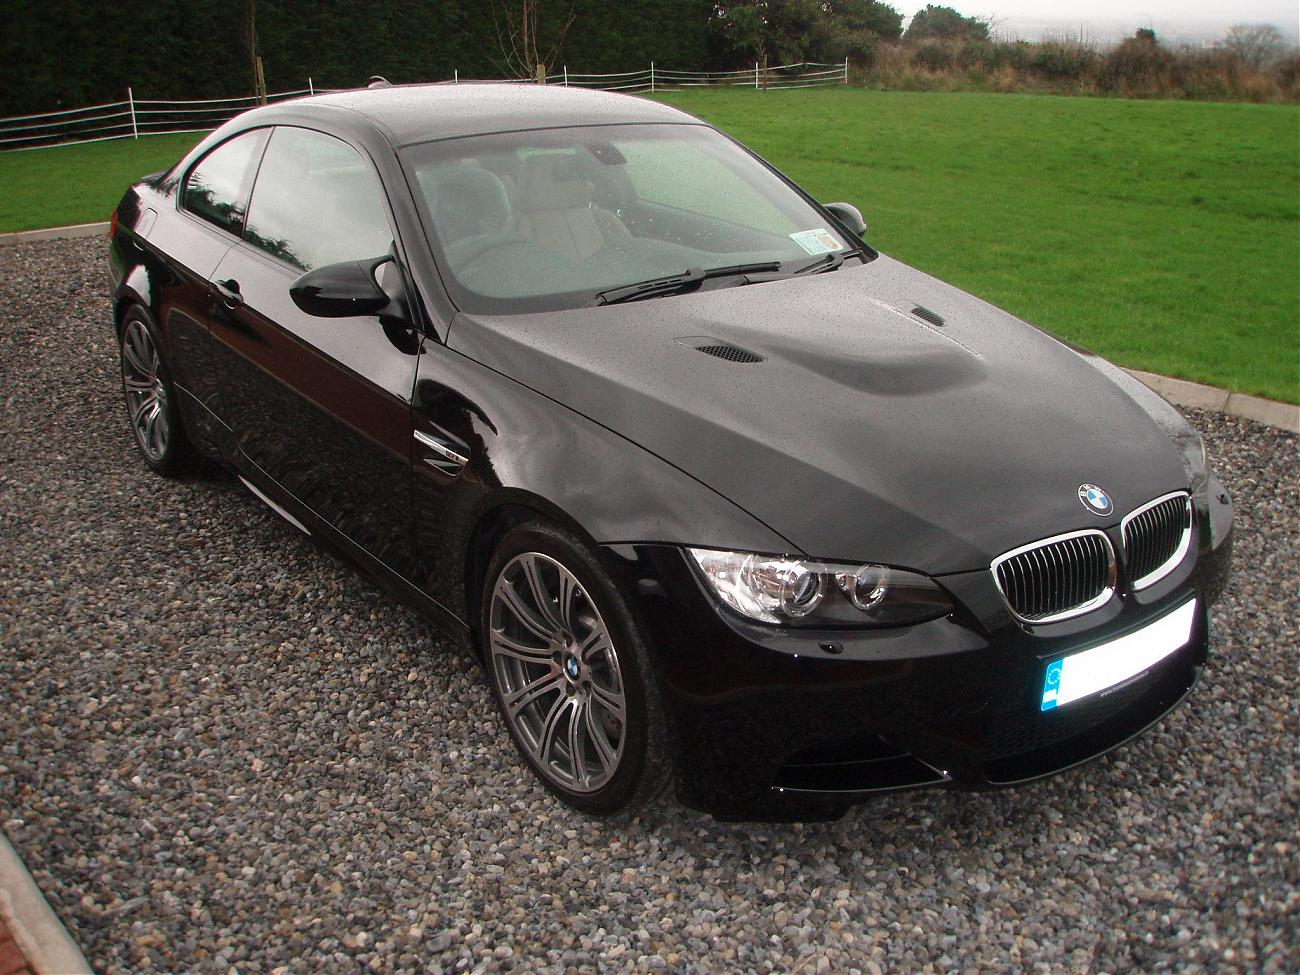 E92 E93 Official Jet Black M3 Coupe Cabrio Thread